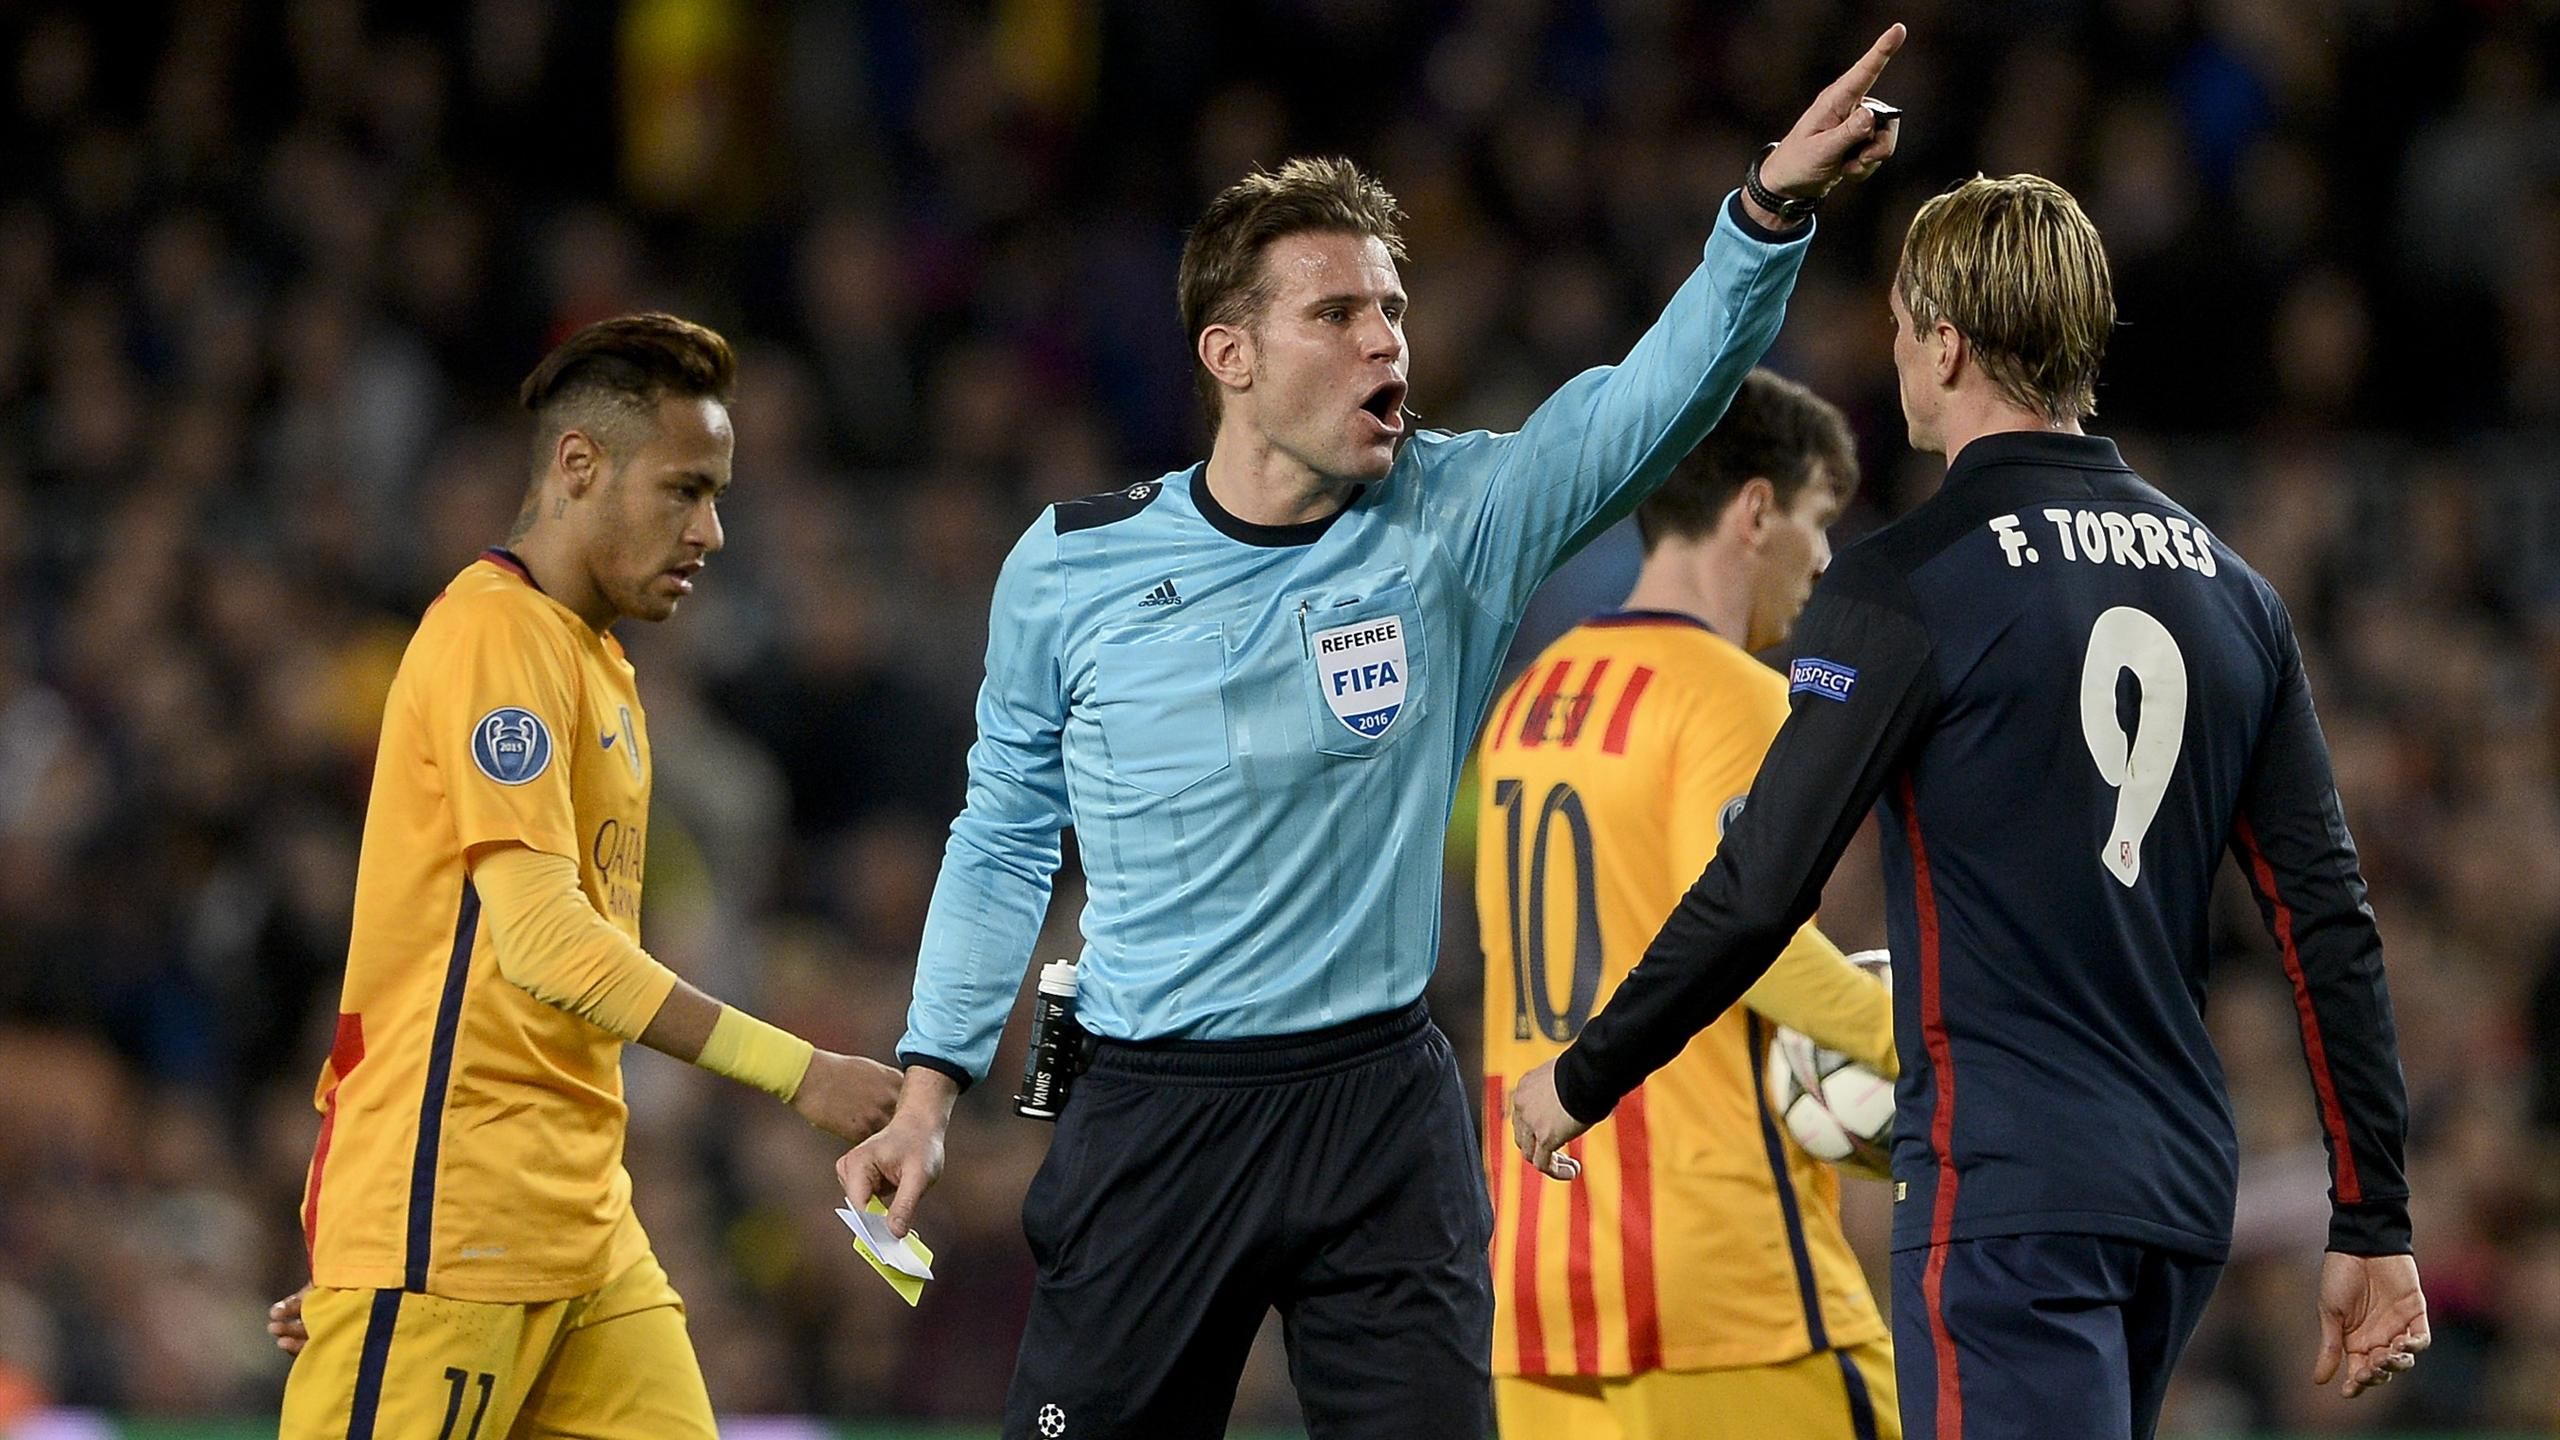 Felix Brych (C) gestures after showing a yellow card to Atletico Madrid's forward Fernando Torres (R)